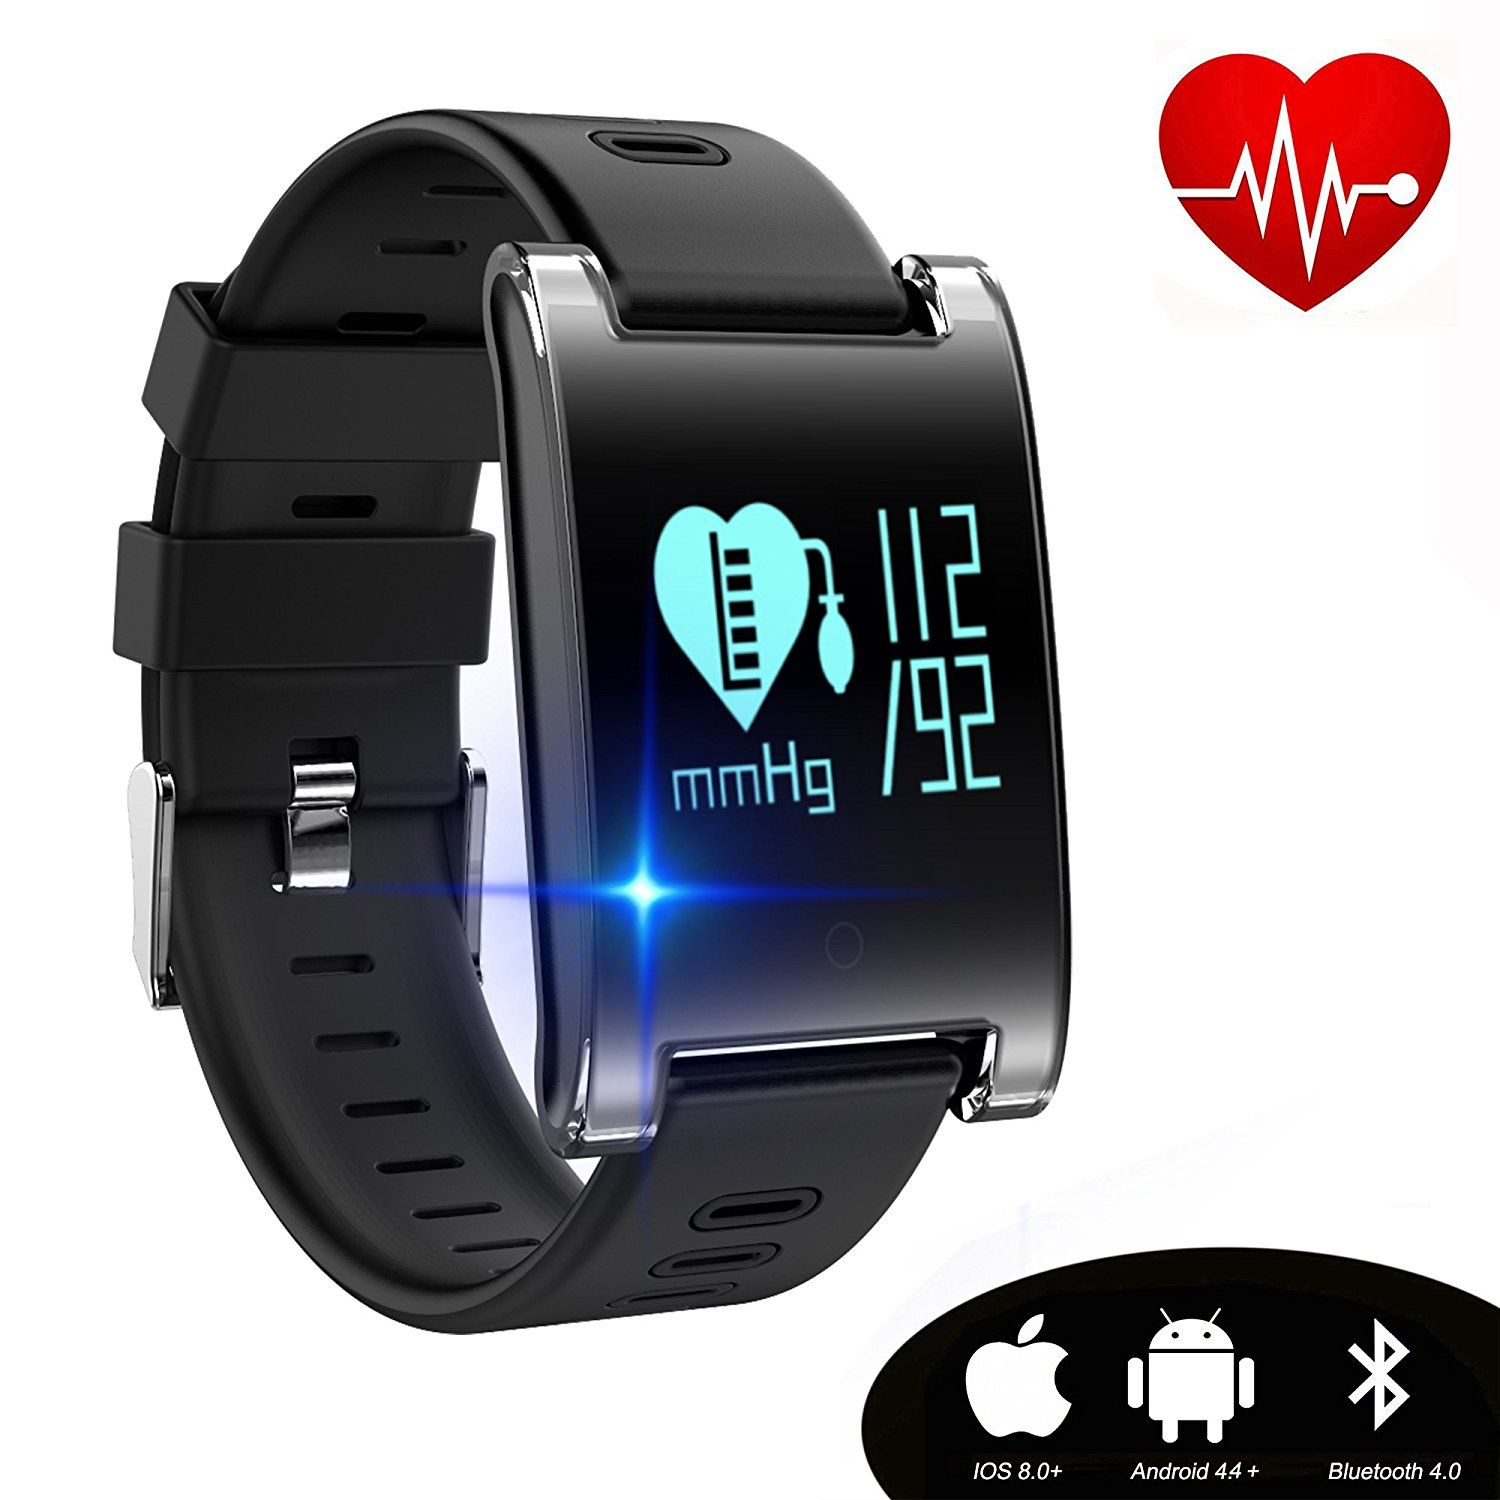 watch fitbit watches as running fitness best would transform make still that tracking a smartwatch such or well it app first gps your ionic market technology s one is truly developed wearable great training tracker with lacking two features